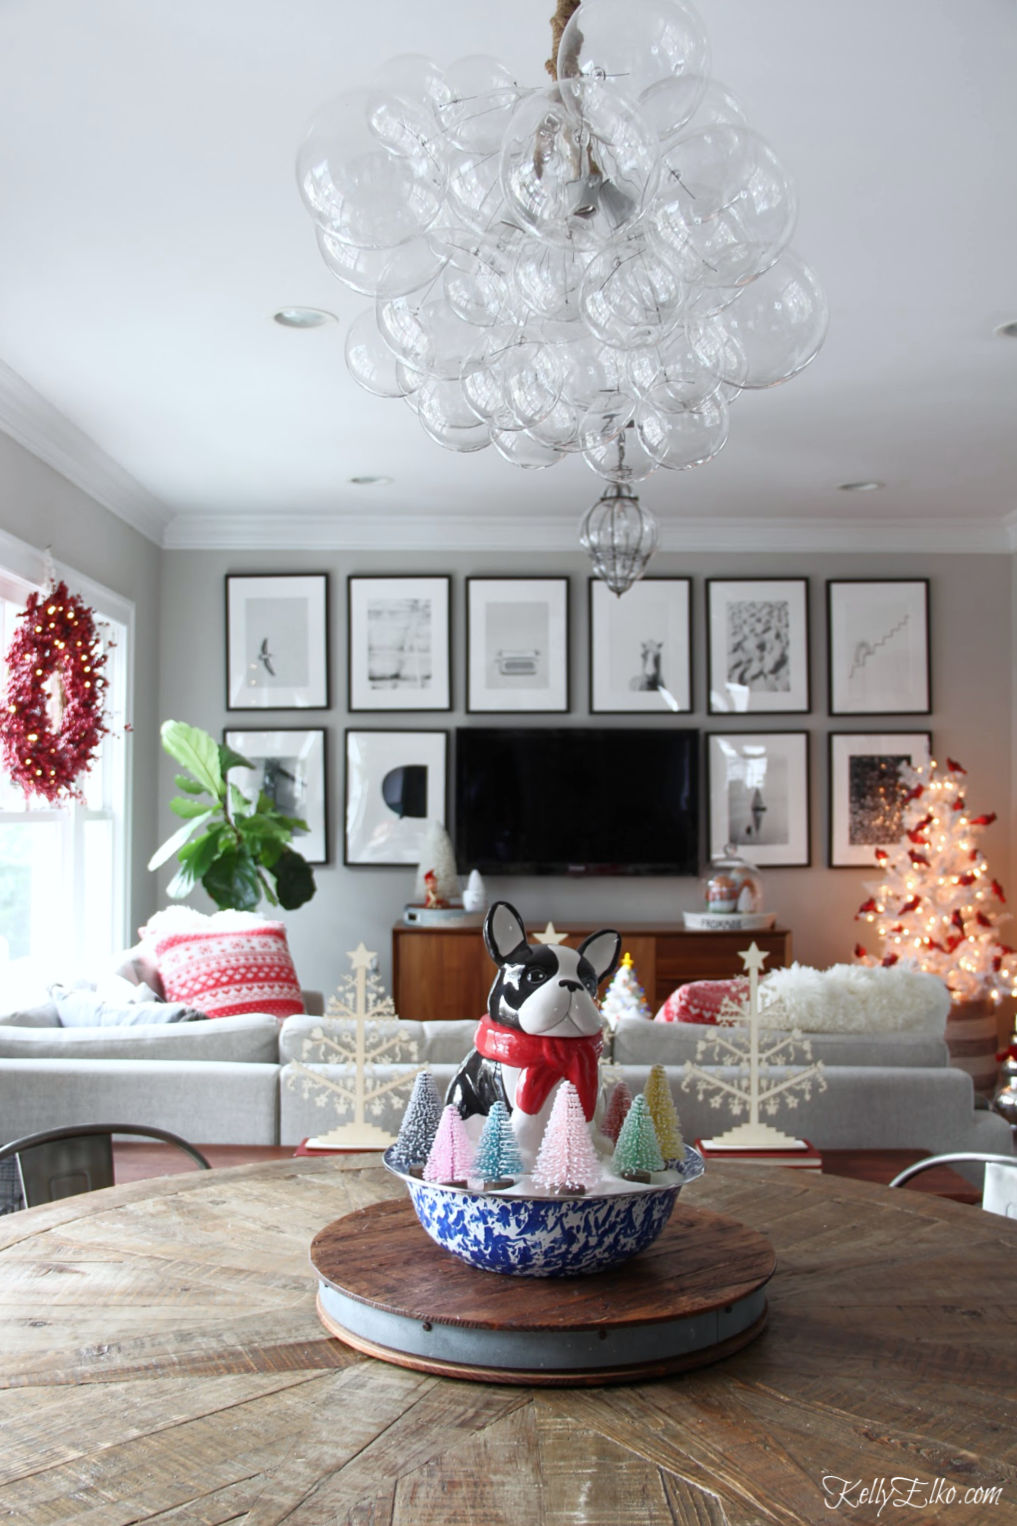 Love this fun Christmas home tour and that beautiful bubble glass chandelier kellyelko.com #lighting #chandelier #christmas #christmascenterpiece #christmasdecor #farmhousechristmas #christmastree